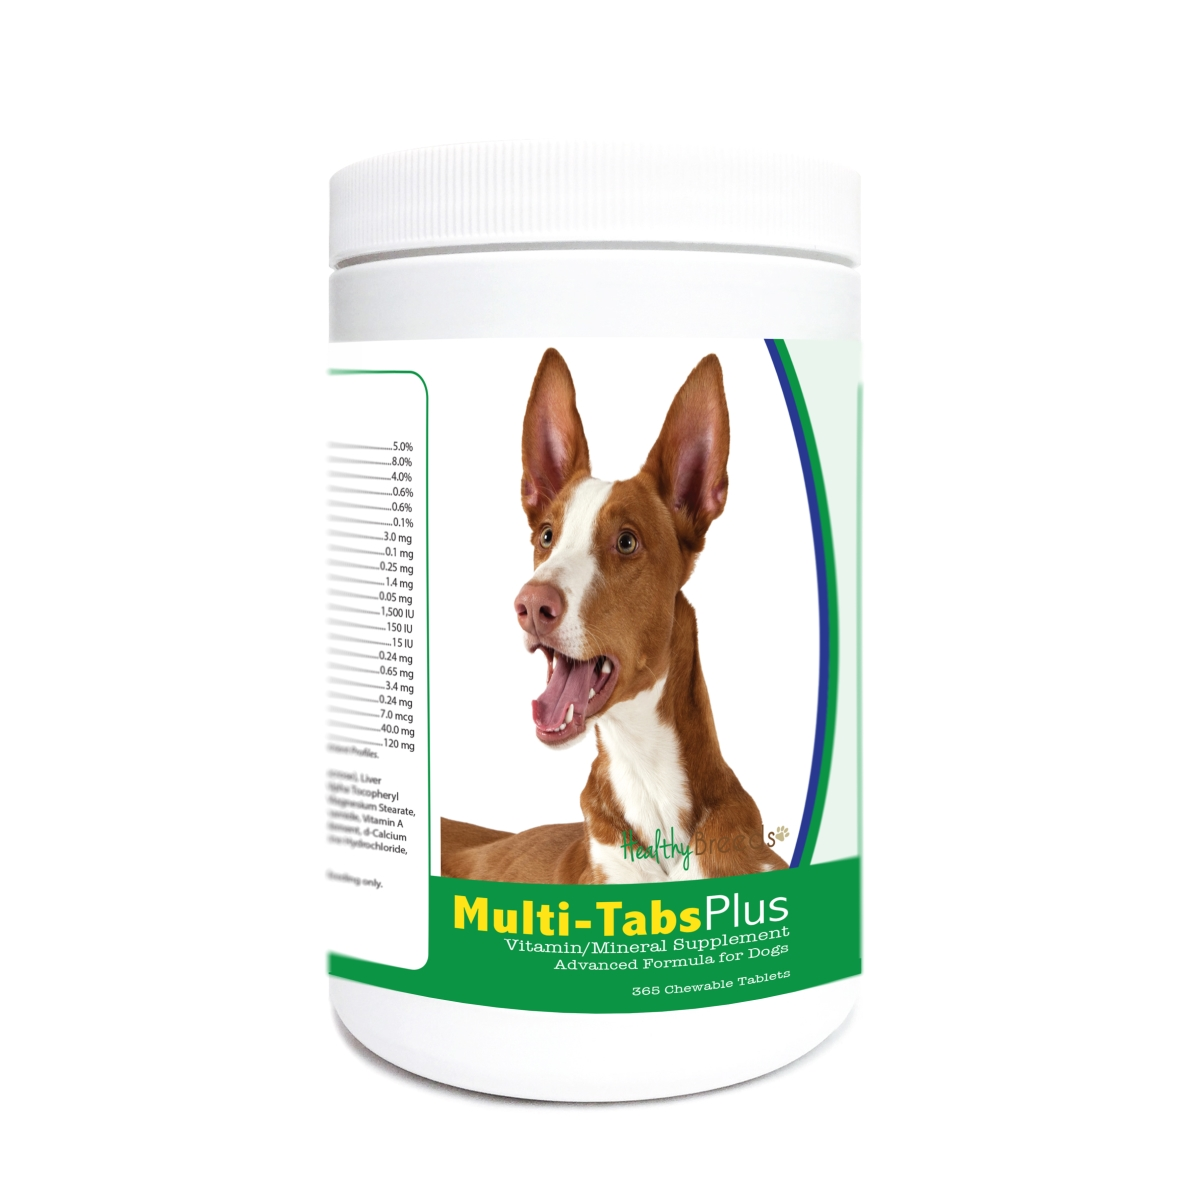 Healthy Breeds 840235174486 Ibizan Hound Multi-Tabs Plus Chewable Tablets - 365 Count